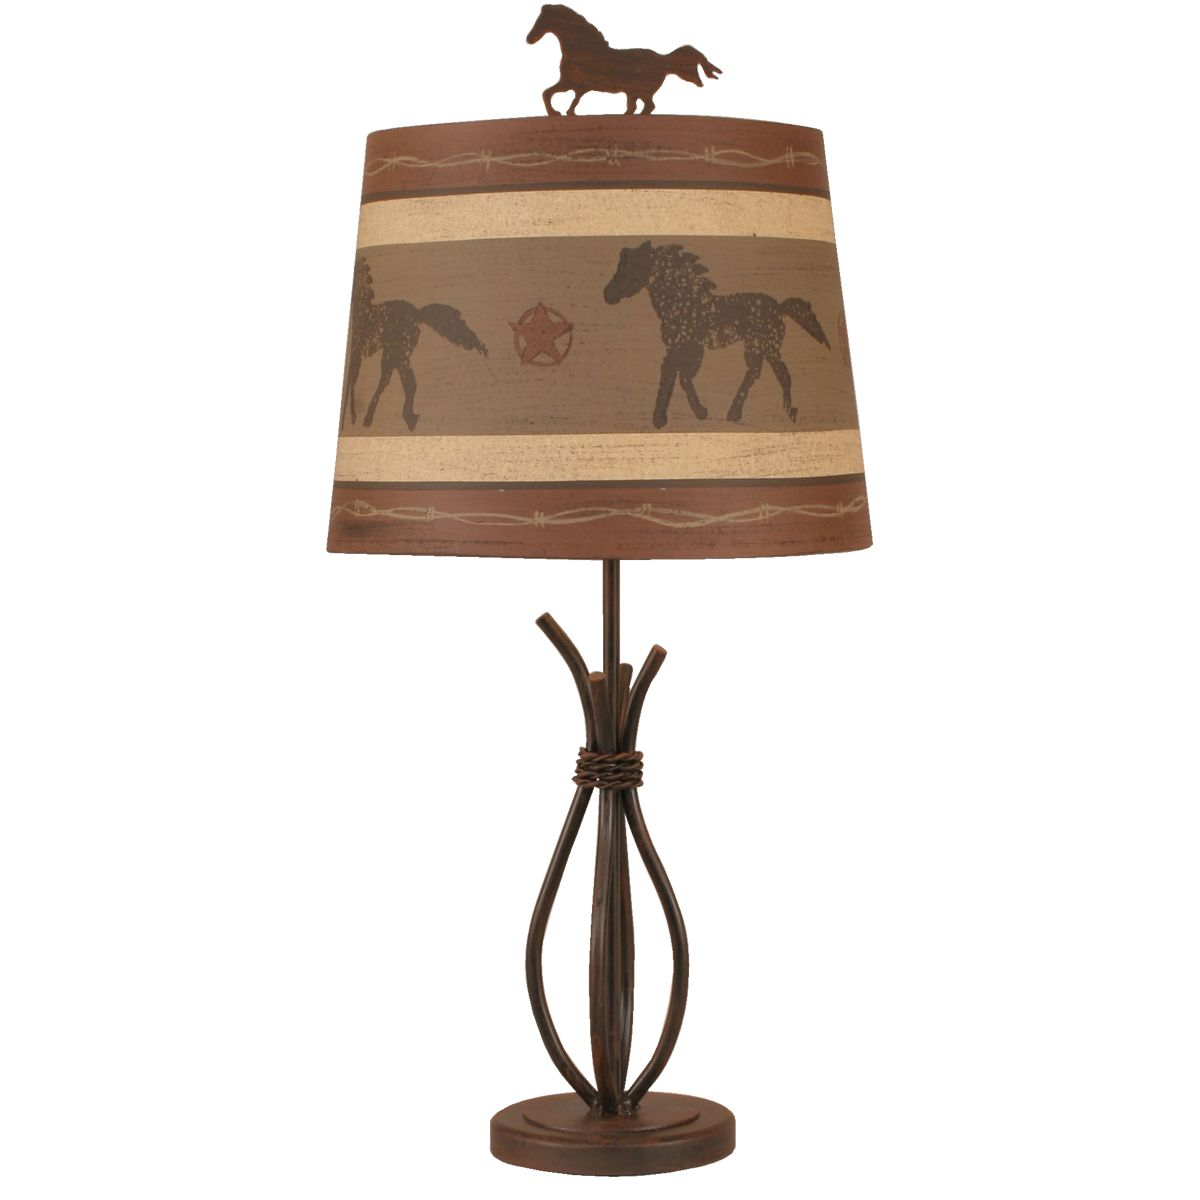 Rusted Steel Accent Lamp with Galloping Horse Shade